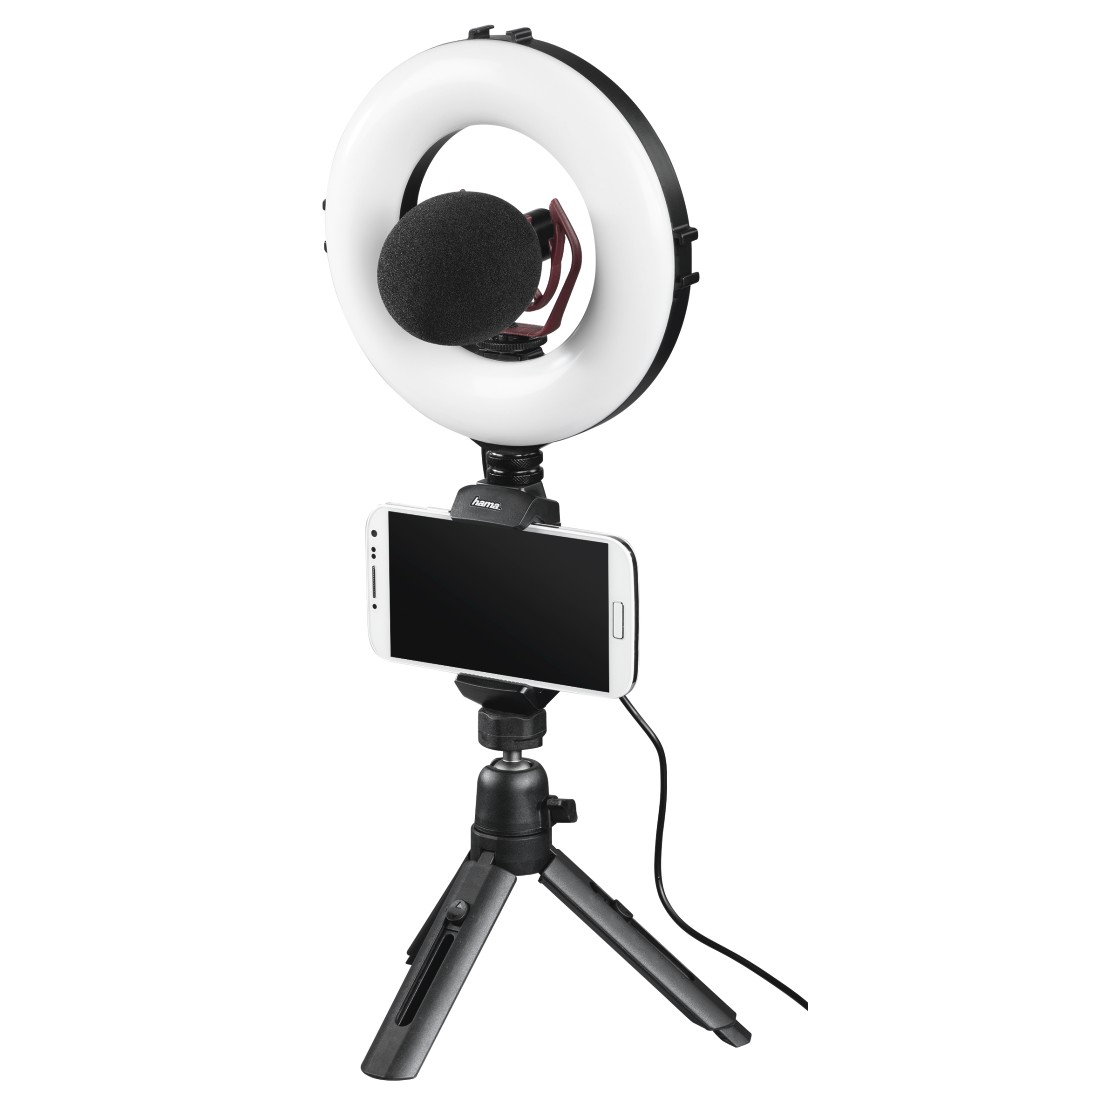 "awx11 Druckfähige Anwendung 11 - Hama, ""SpotLight Work Area 67"" LED Ring Light, Set for Smartphone and Tablet"